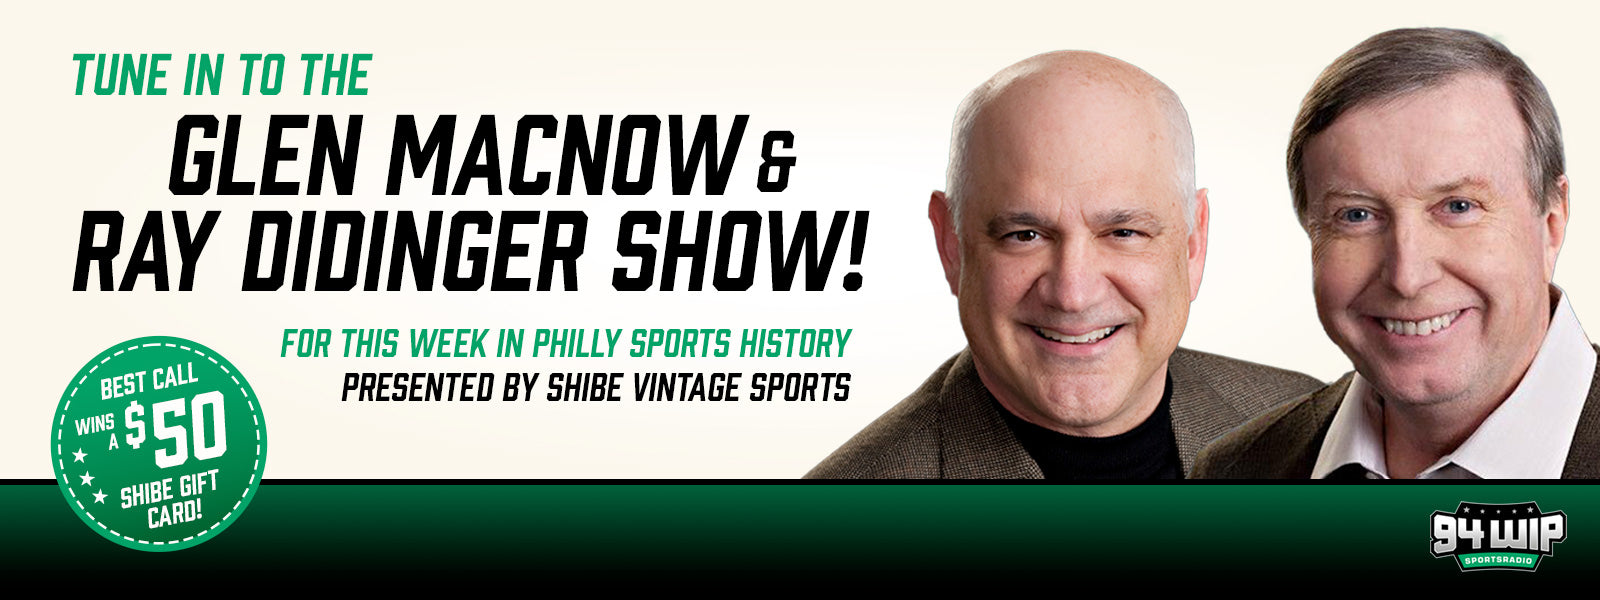 Listen to This Week in Philly Sports History Saturdays at 11am with Glen Macnow and Ray Didinger on 94 WIP radio